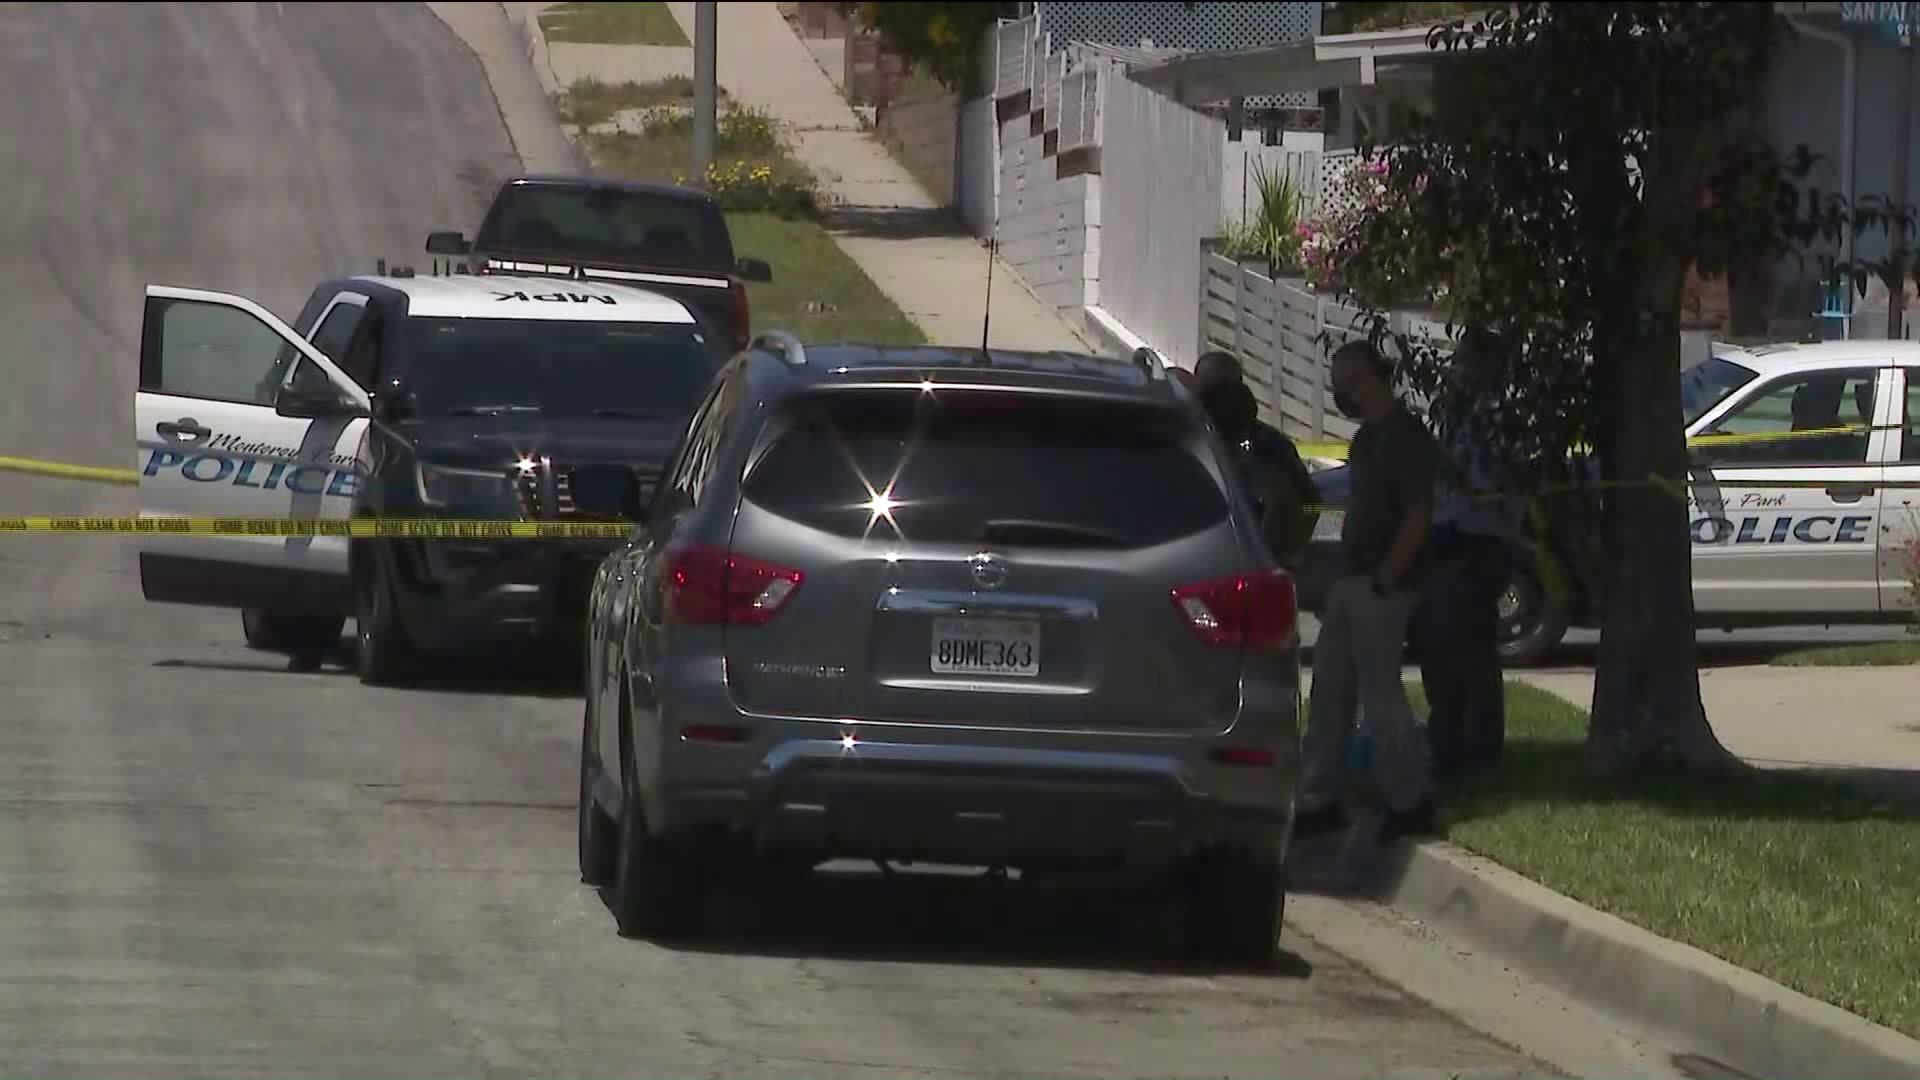 Detectives investigate the scene of a deadly stabbing in the 1700 block of Alisar Avenue in Monterey Park on May 6, 2020. (KTLA)